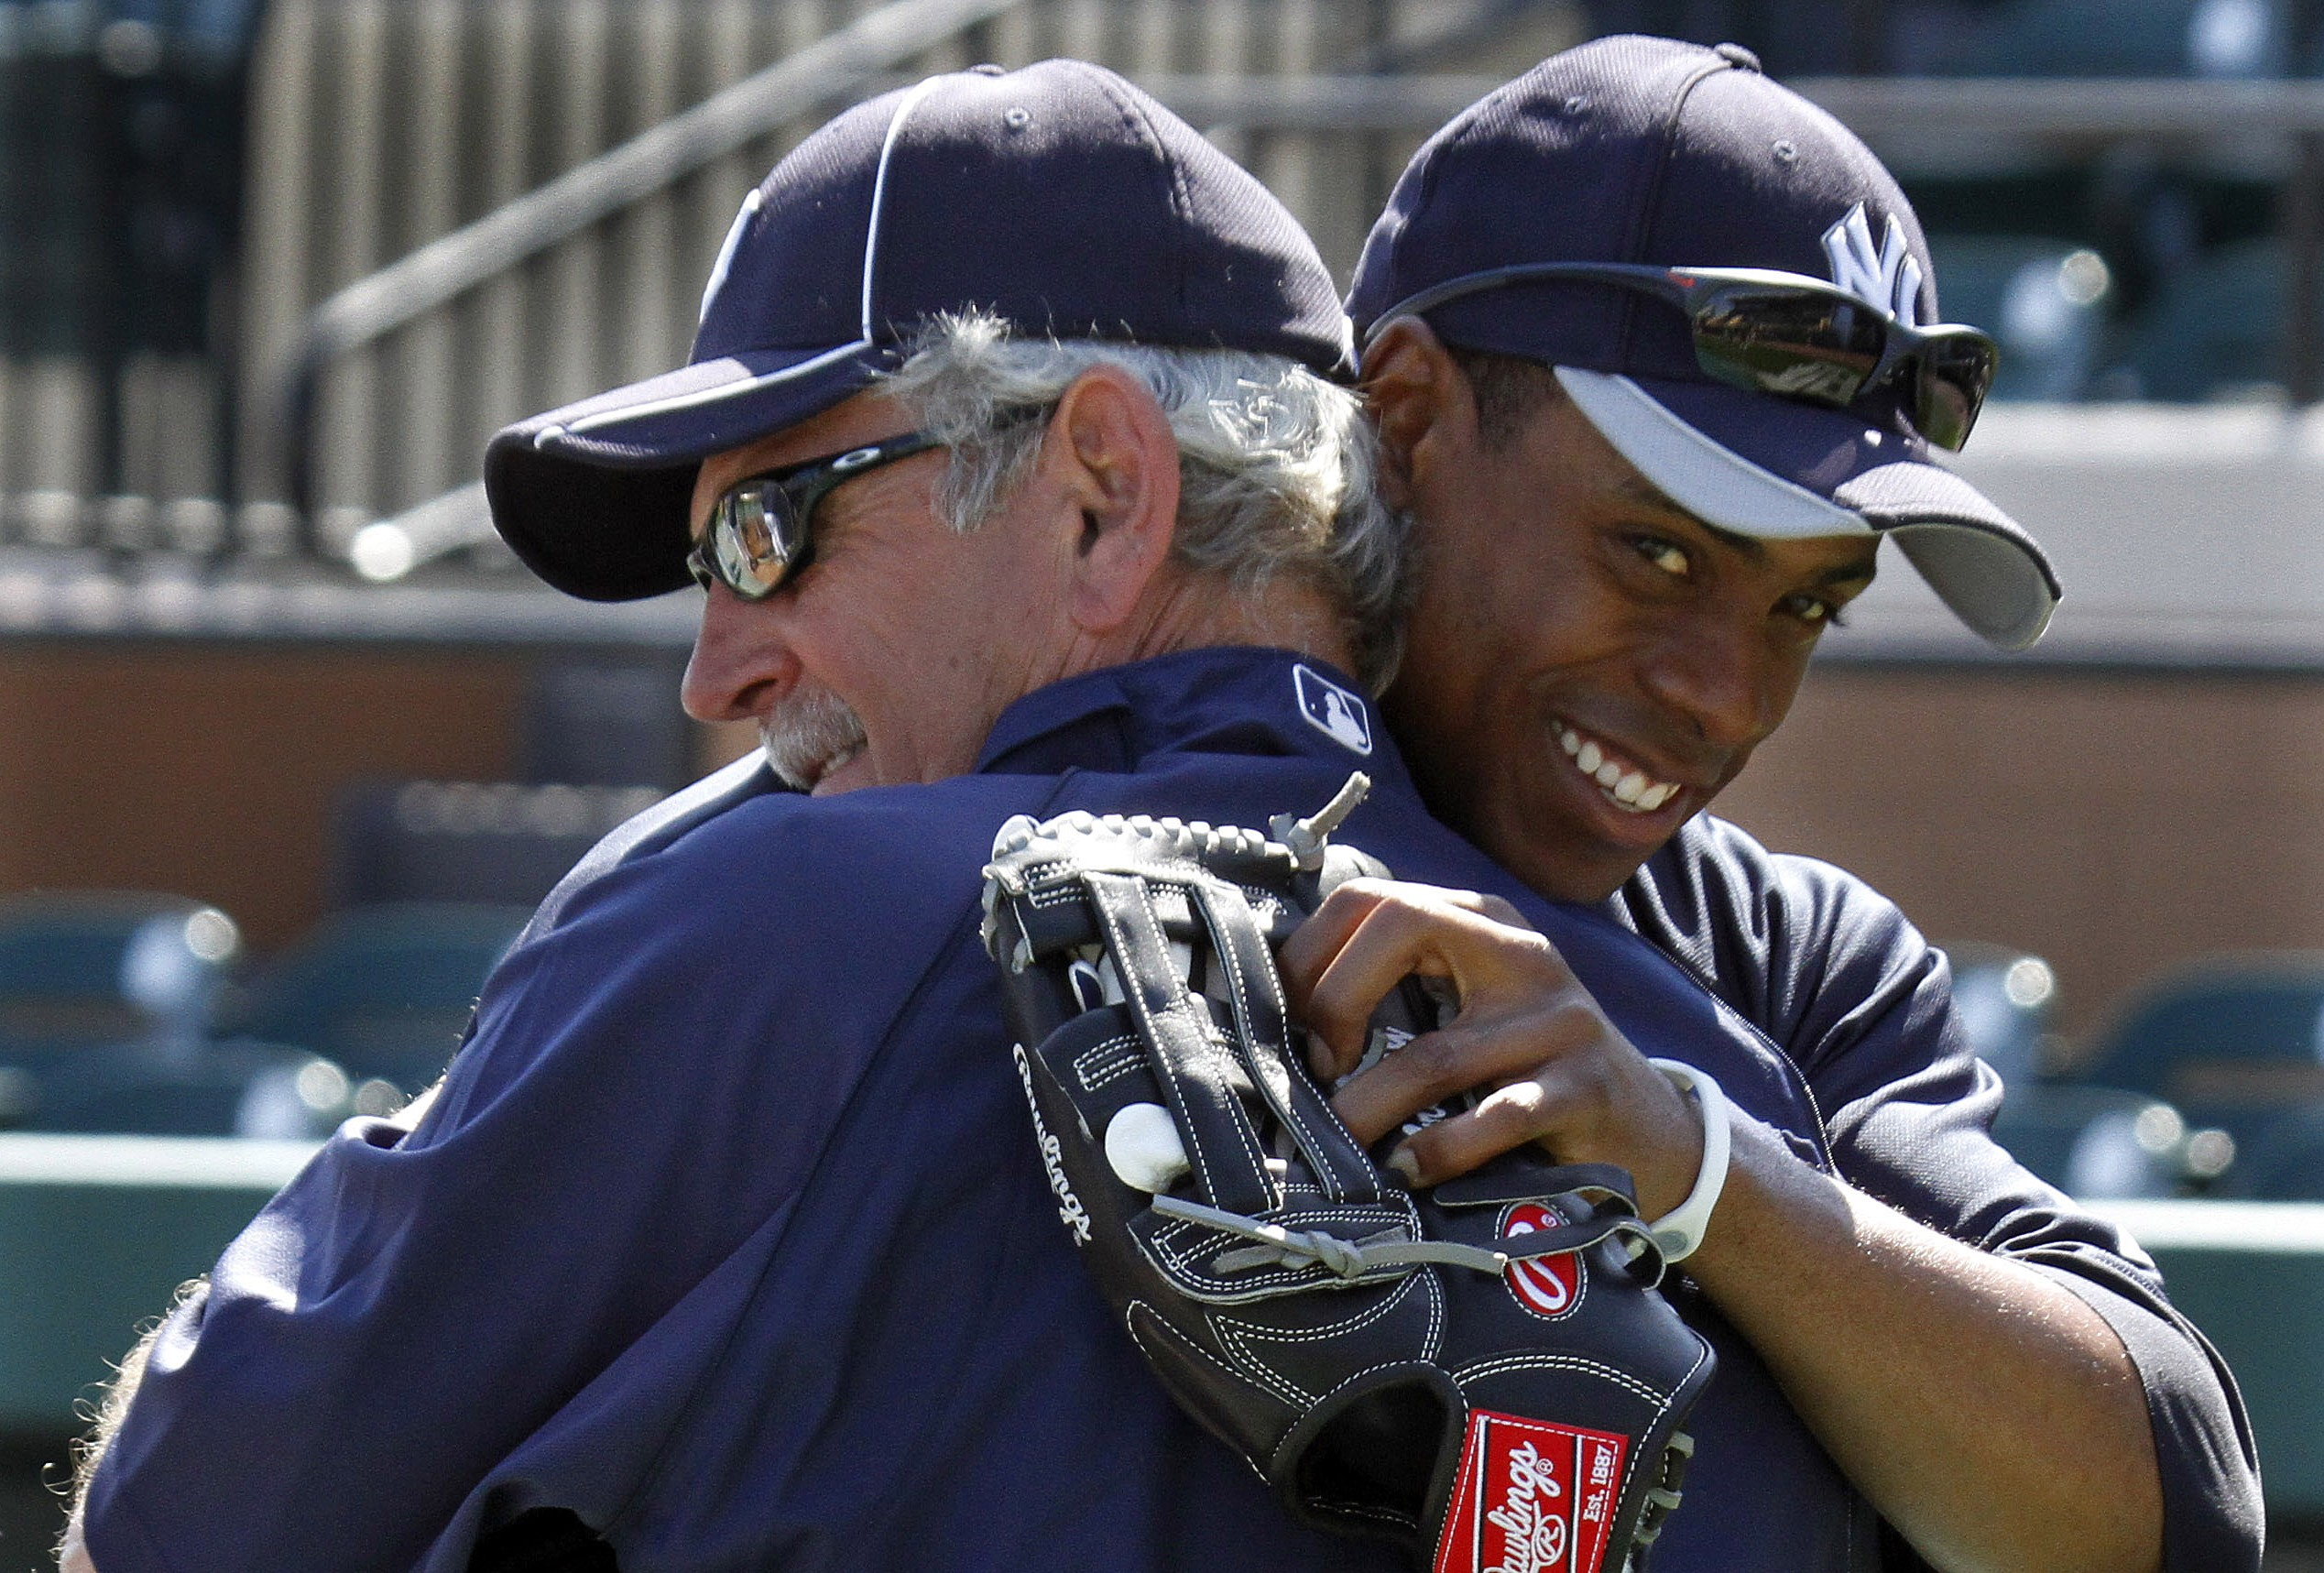 New York Yankees' Curtis Granderson, right, hugs Jim Leyland his old manager with the Detroit Tigers before a spring training baseball game between the Yankees and the Tigers in Lakeland, Fla., Wednesday, March 10, 2010.  (AP Photo/Gene J. Puskar)